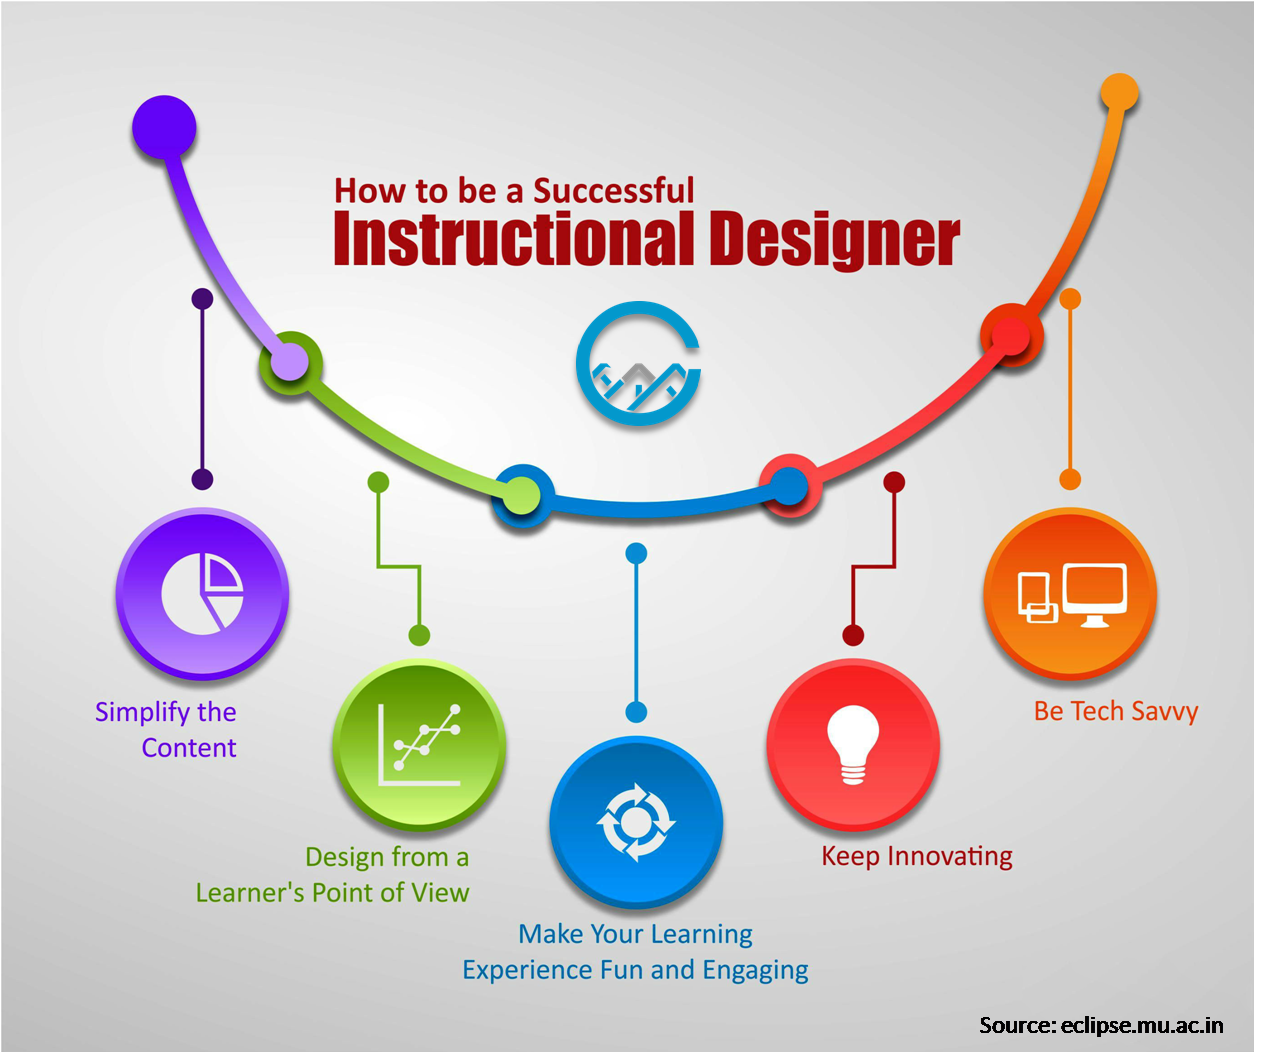 How To Be A Successful Instructional Designer Instructionaldesigner Elearning Customelearning Instructional Design Elearning Virtual Reality Companies